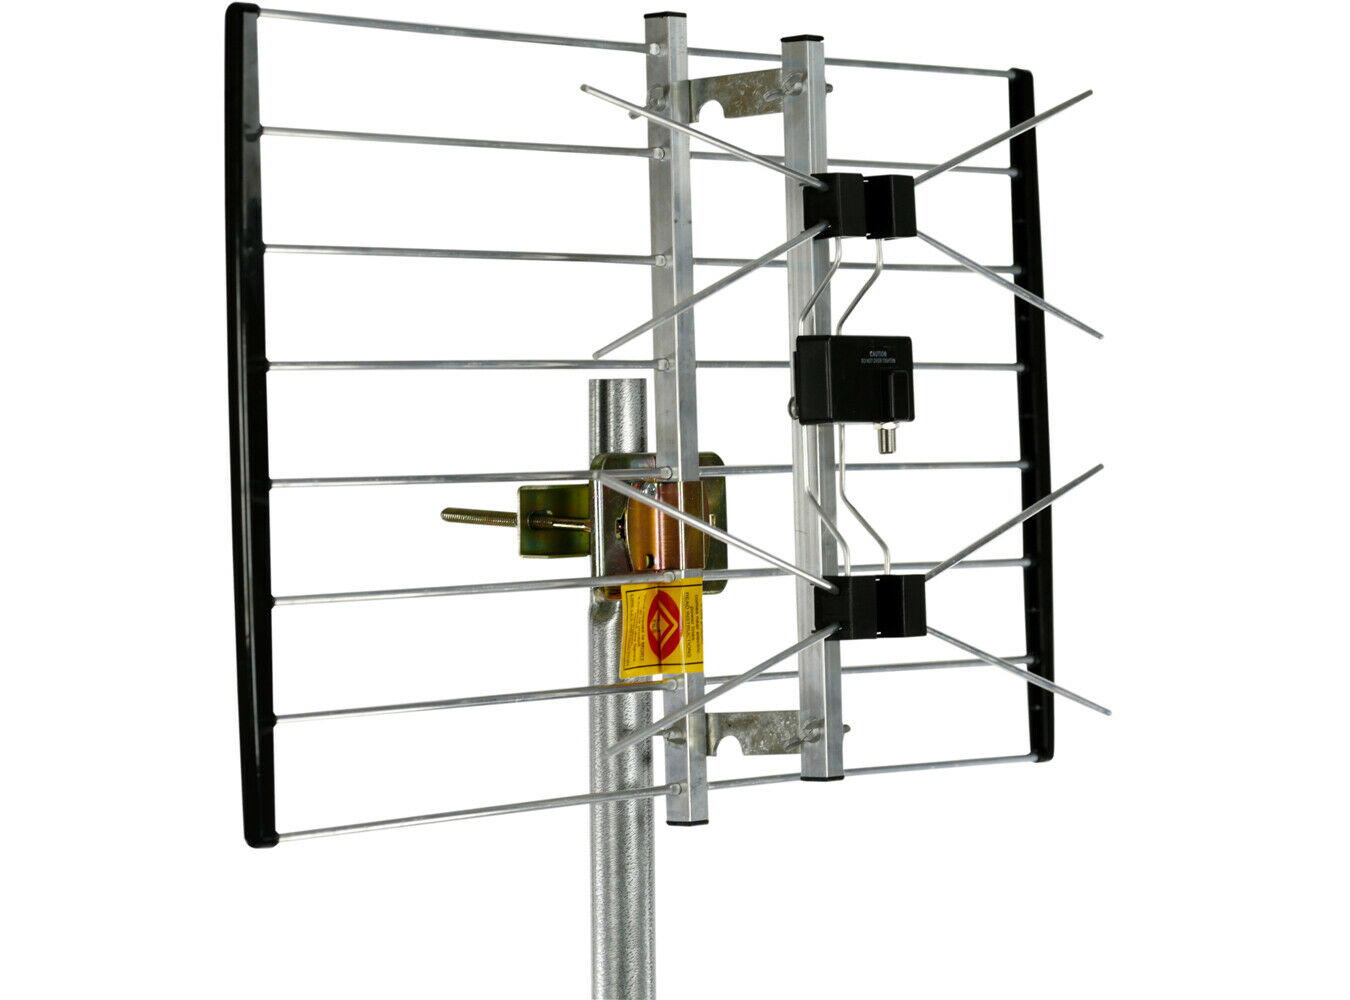 Channel Master METROtenna Outdoor TV Antenna Multi-Directional 40 Mile CM-4220HD. Available Now for 59.00